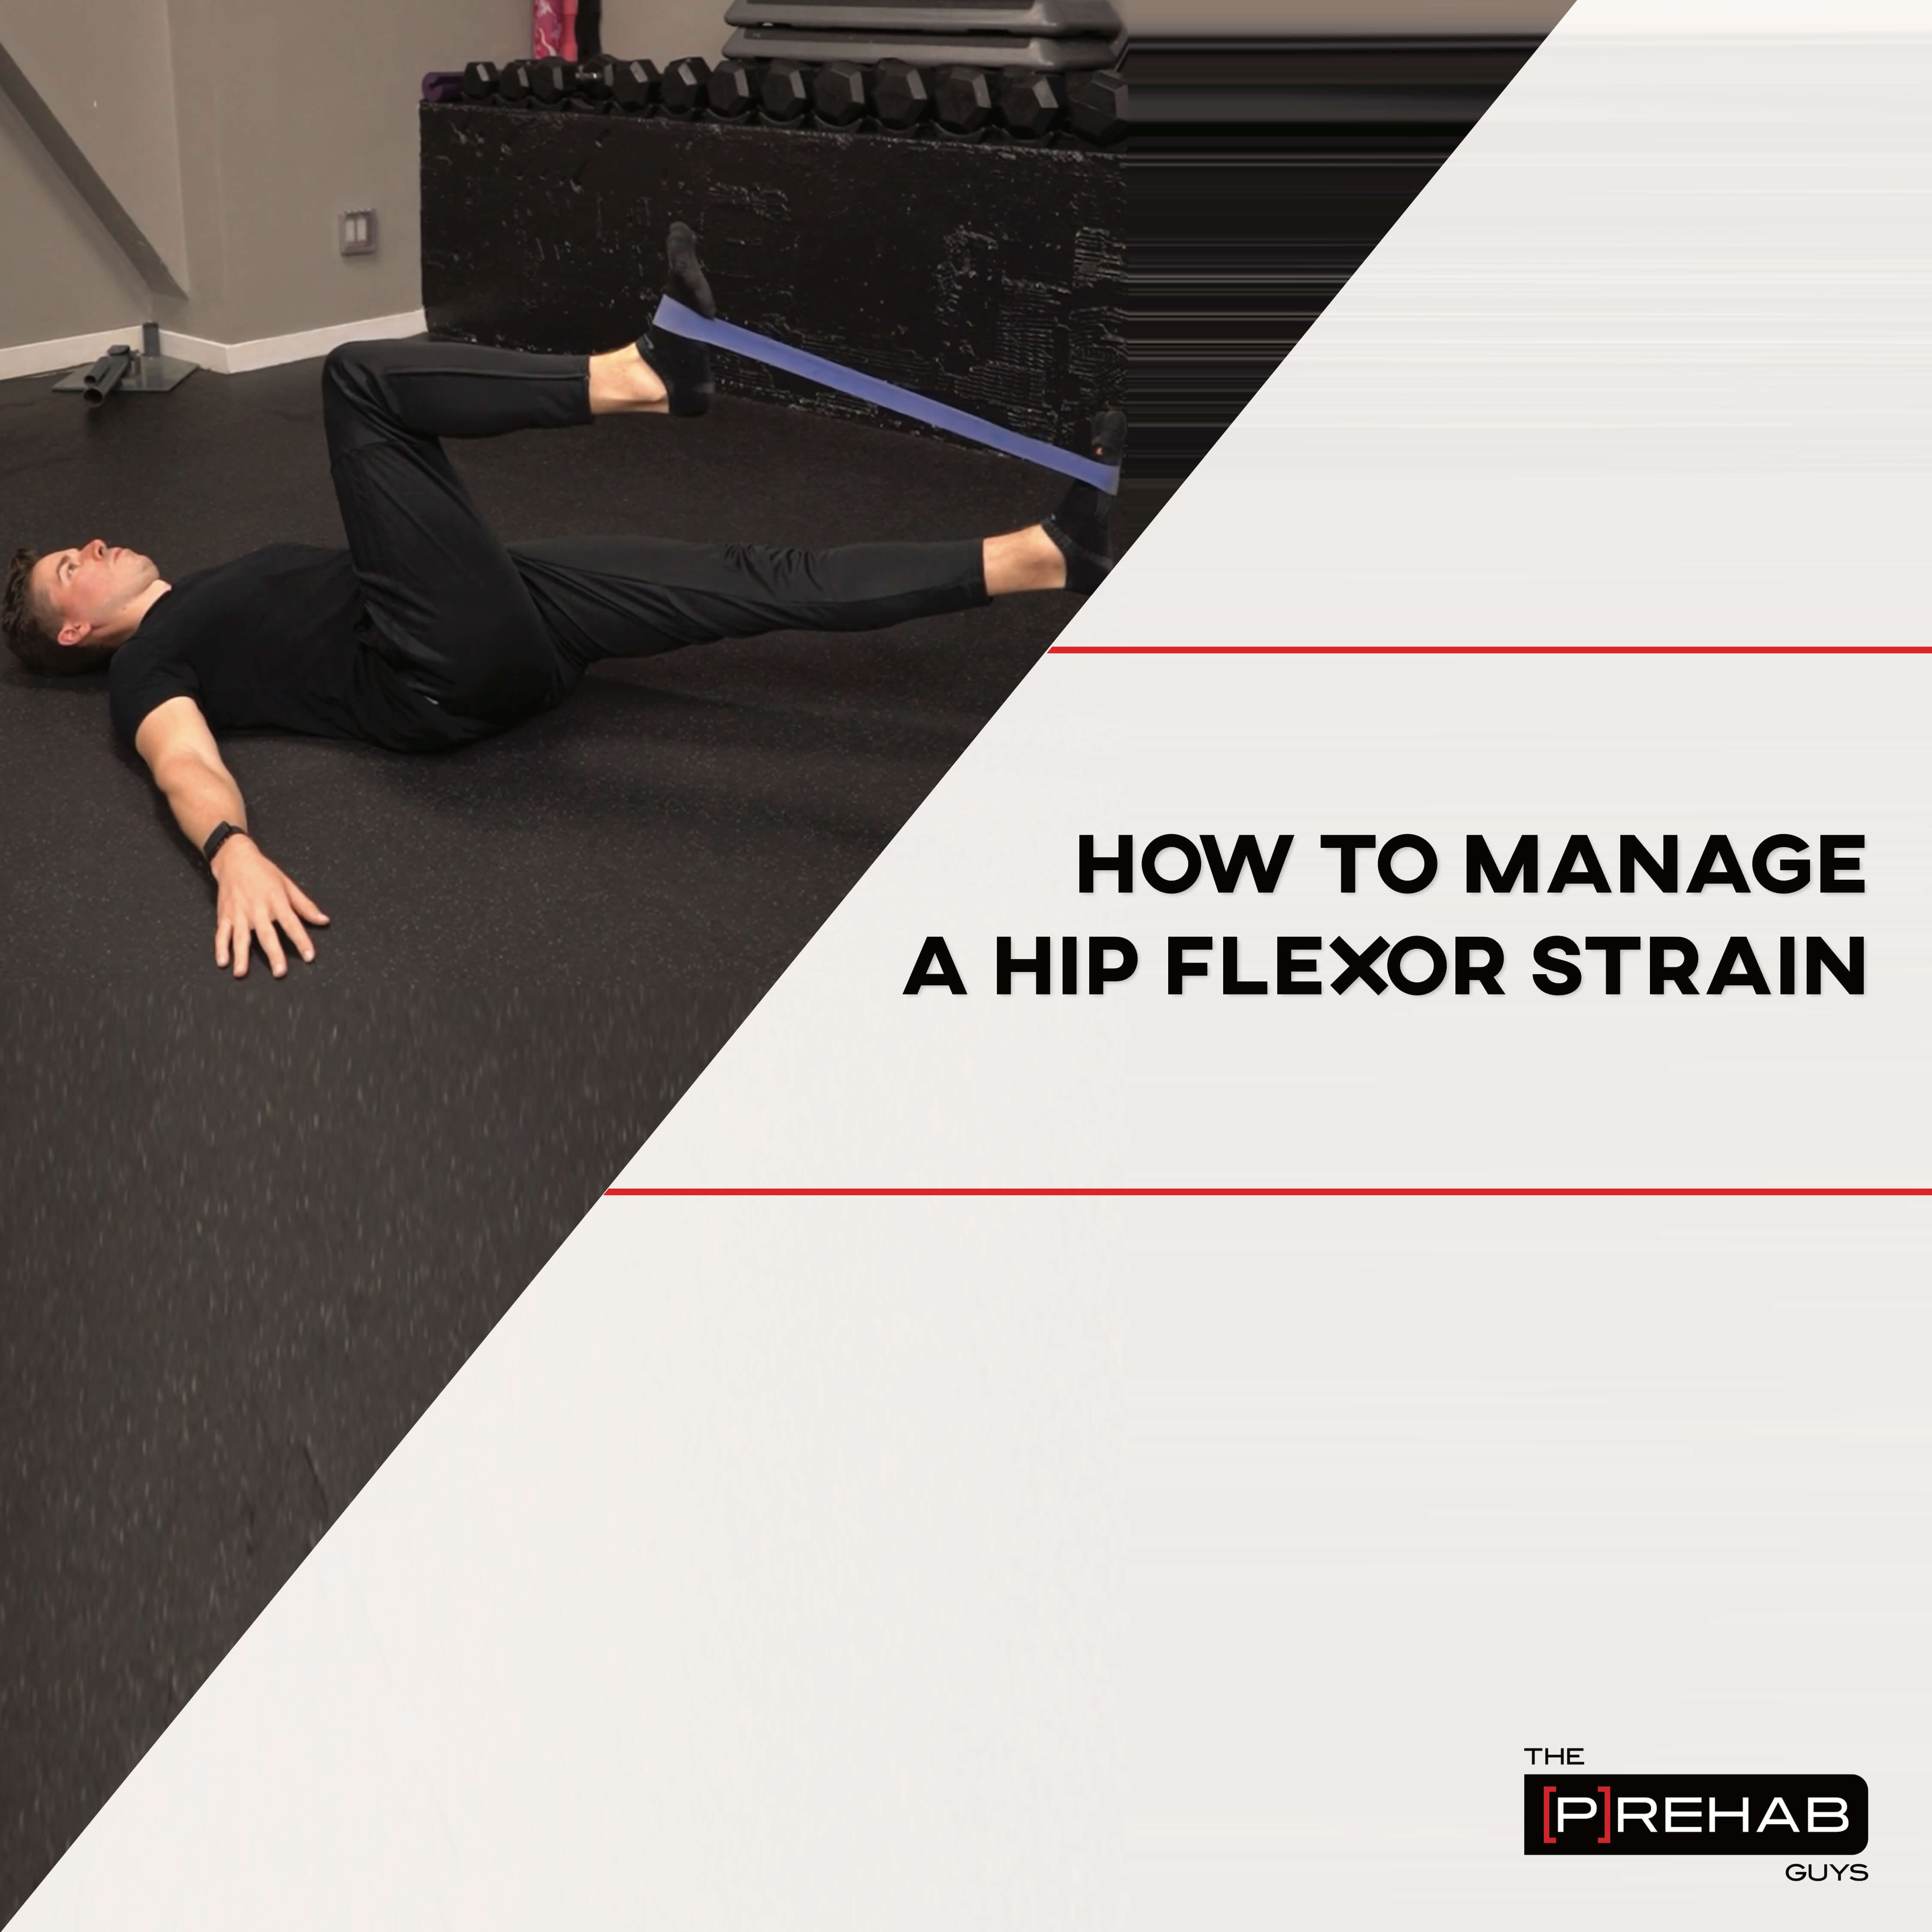 How to Manage a Hip Flexor Strain